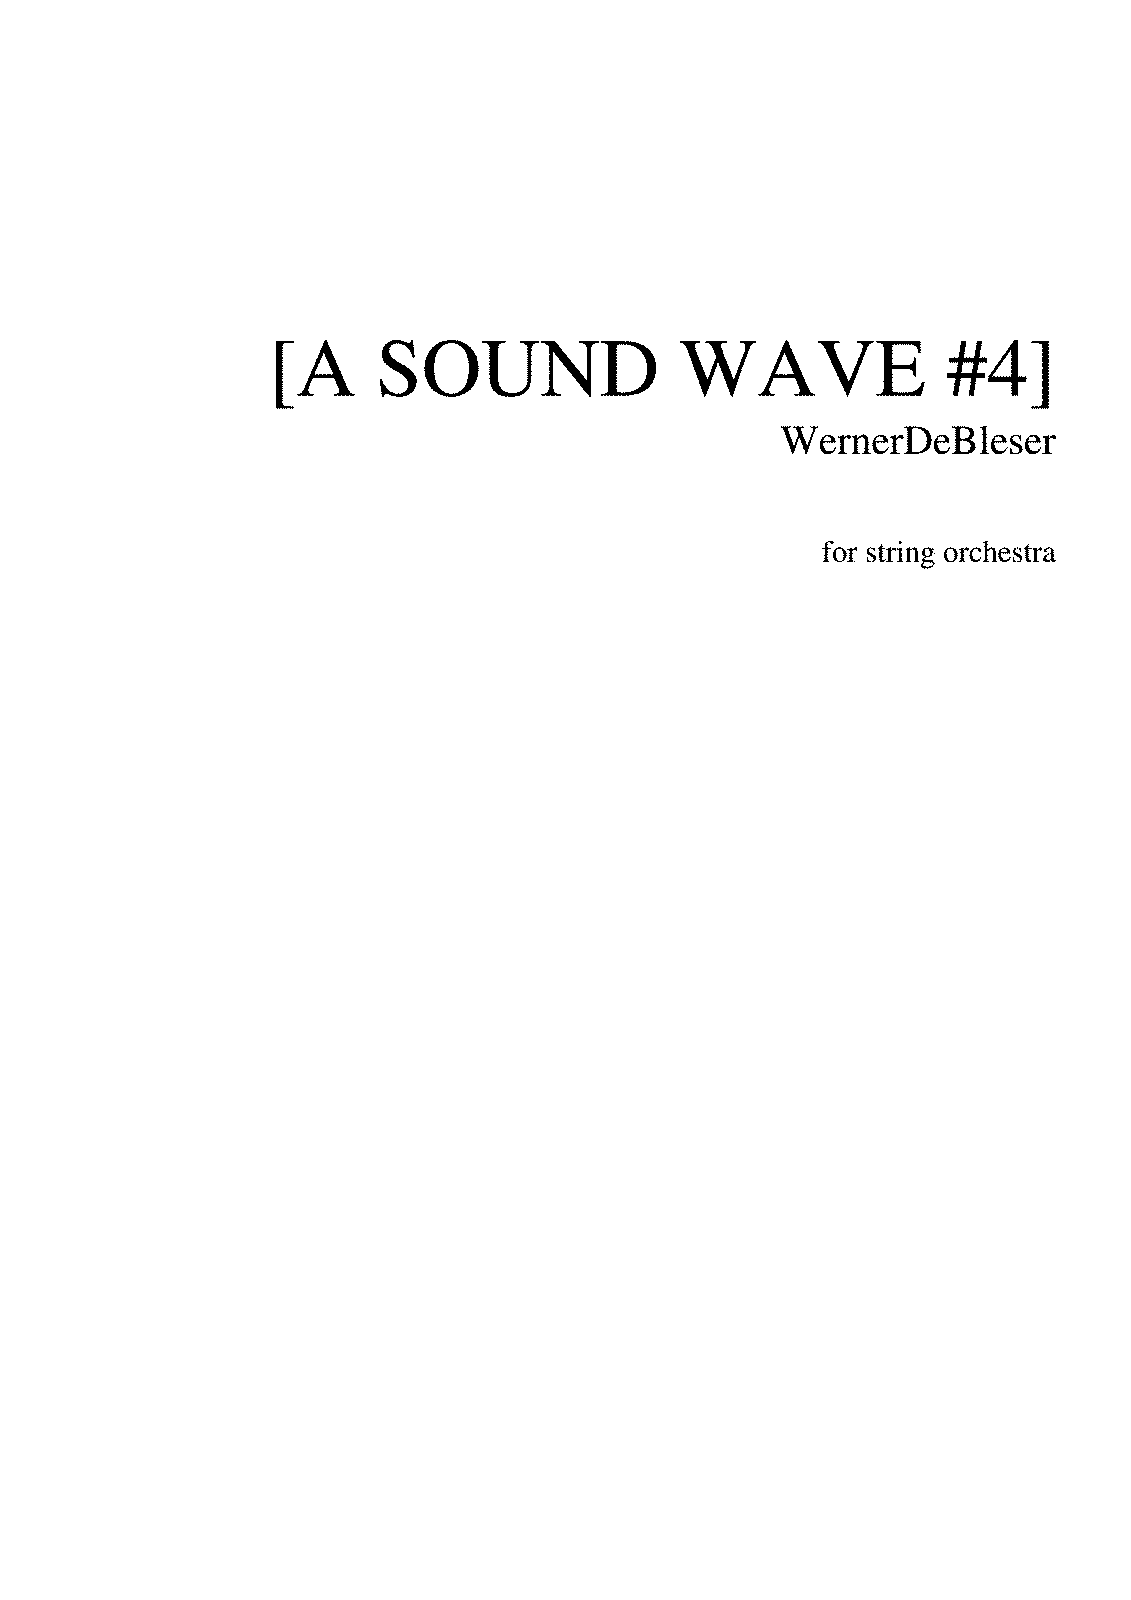 PMLP437579-C174 - A SOUND WAVE -4 - for string orchestra - score.pdf